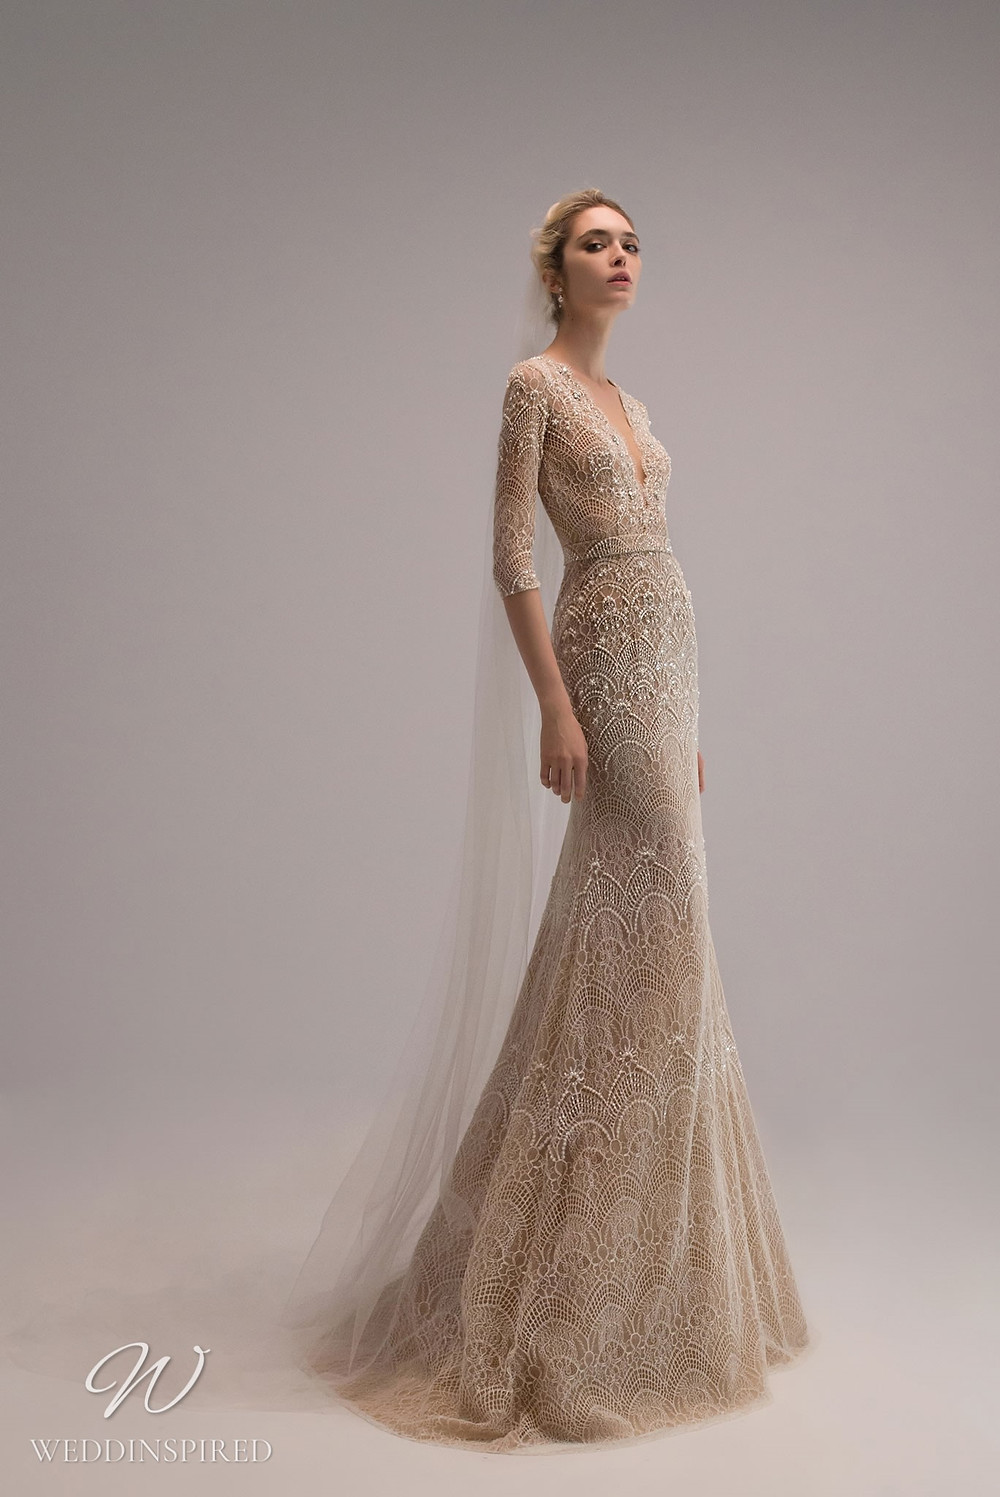 An Ersa Atelier 2021 blush lace mermaid wedding dress with half sleeves, a v neck and beading